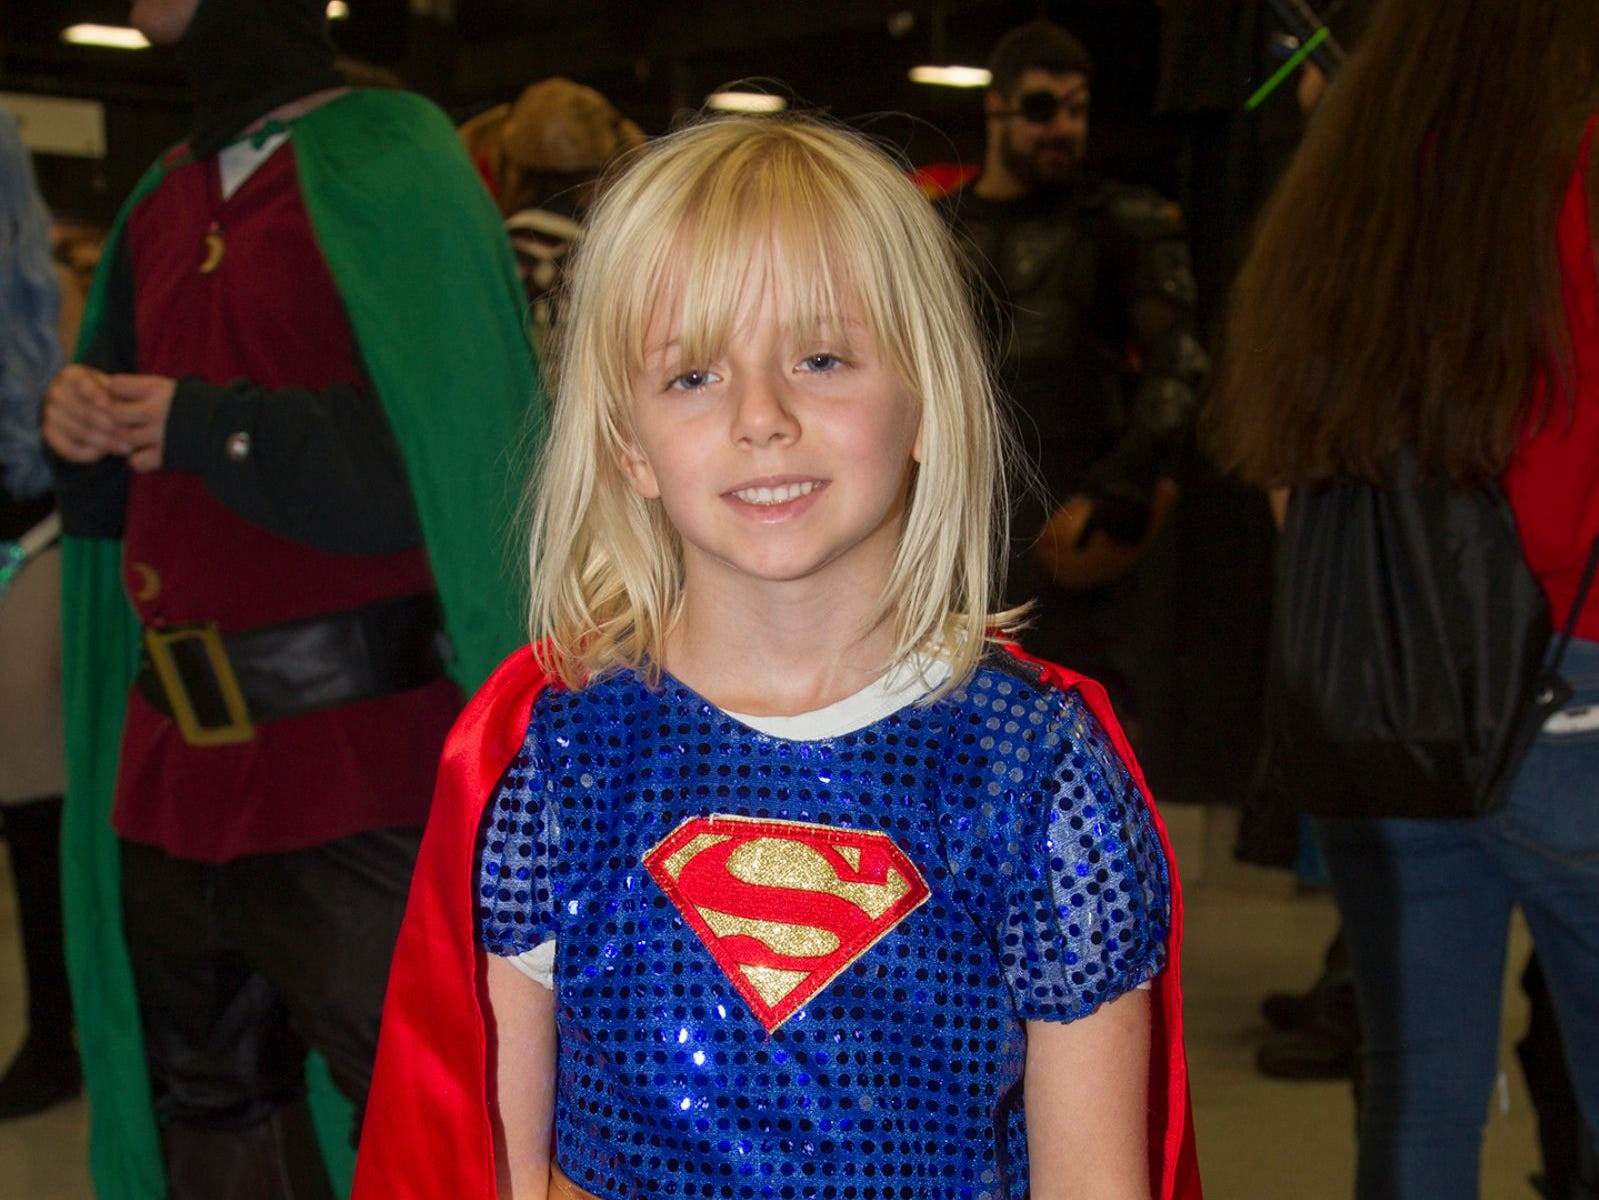 Kelly as Supergirl. NJ Convention and Exp Center host the 2018 Hero's and Villians Expo.  09/09/2018